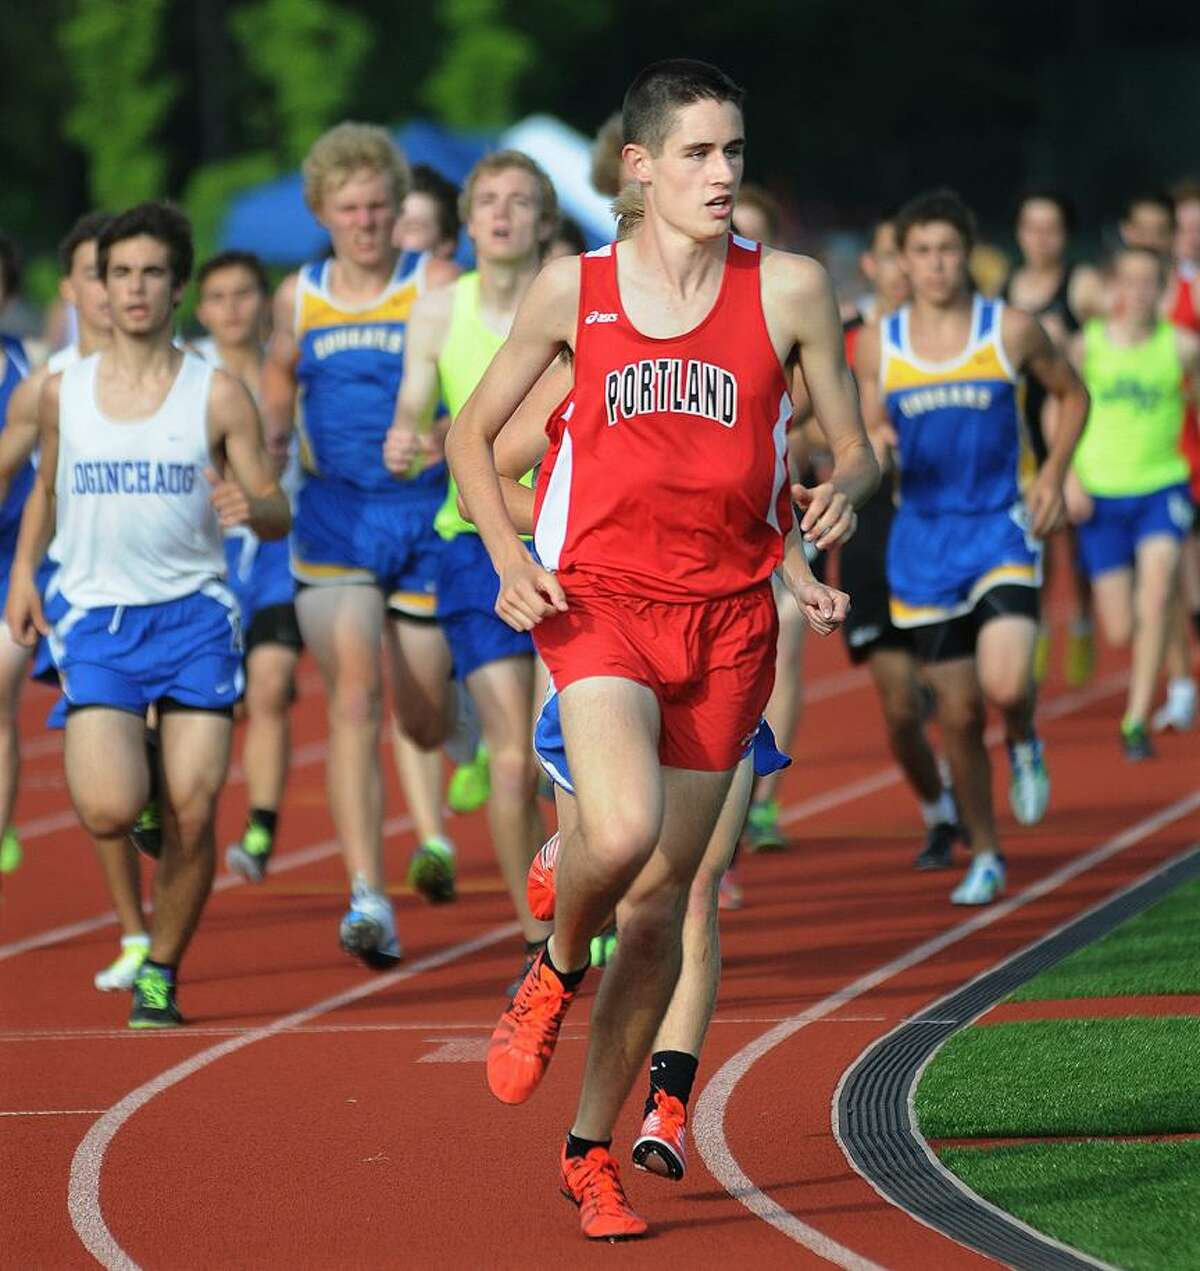 Catherine Avalone/The Middletown PressPortland senior Nick Blanchard won the 3200m at the Shoreline Conference Boys Outdoor Track & Field Championship Wednesday afternoon compete in the 800m at the Wally Camp Athletic Complex at Coginchaug High School in Durham.